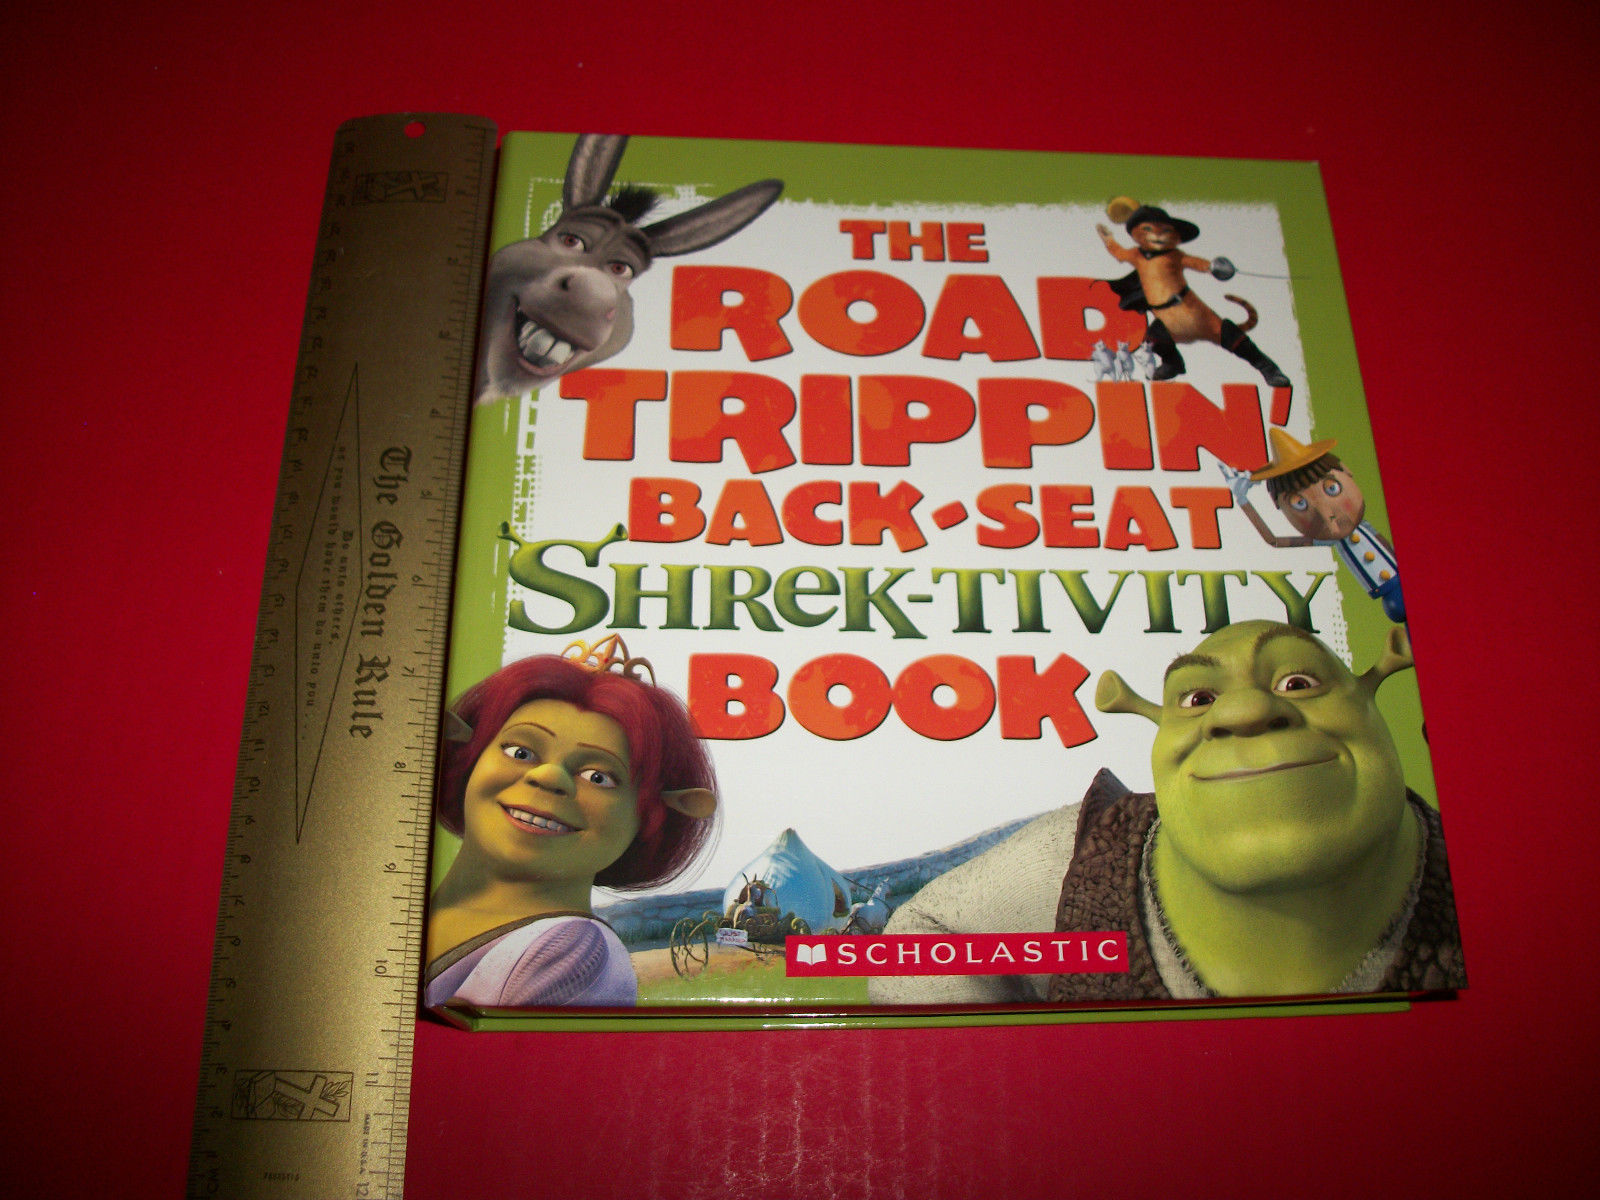 Shrek Craft Kit Book Shrektivity Road Trippin Back Seat Scholastic Activity Set